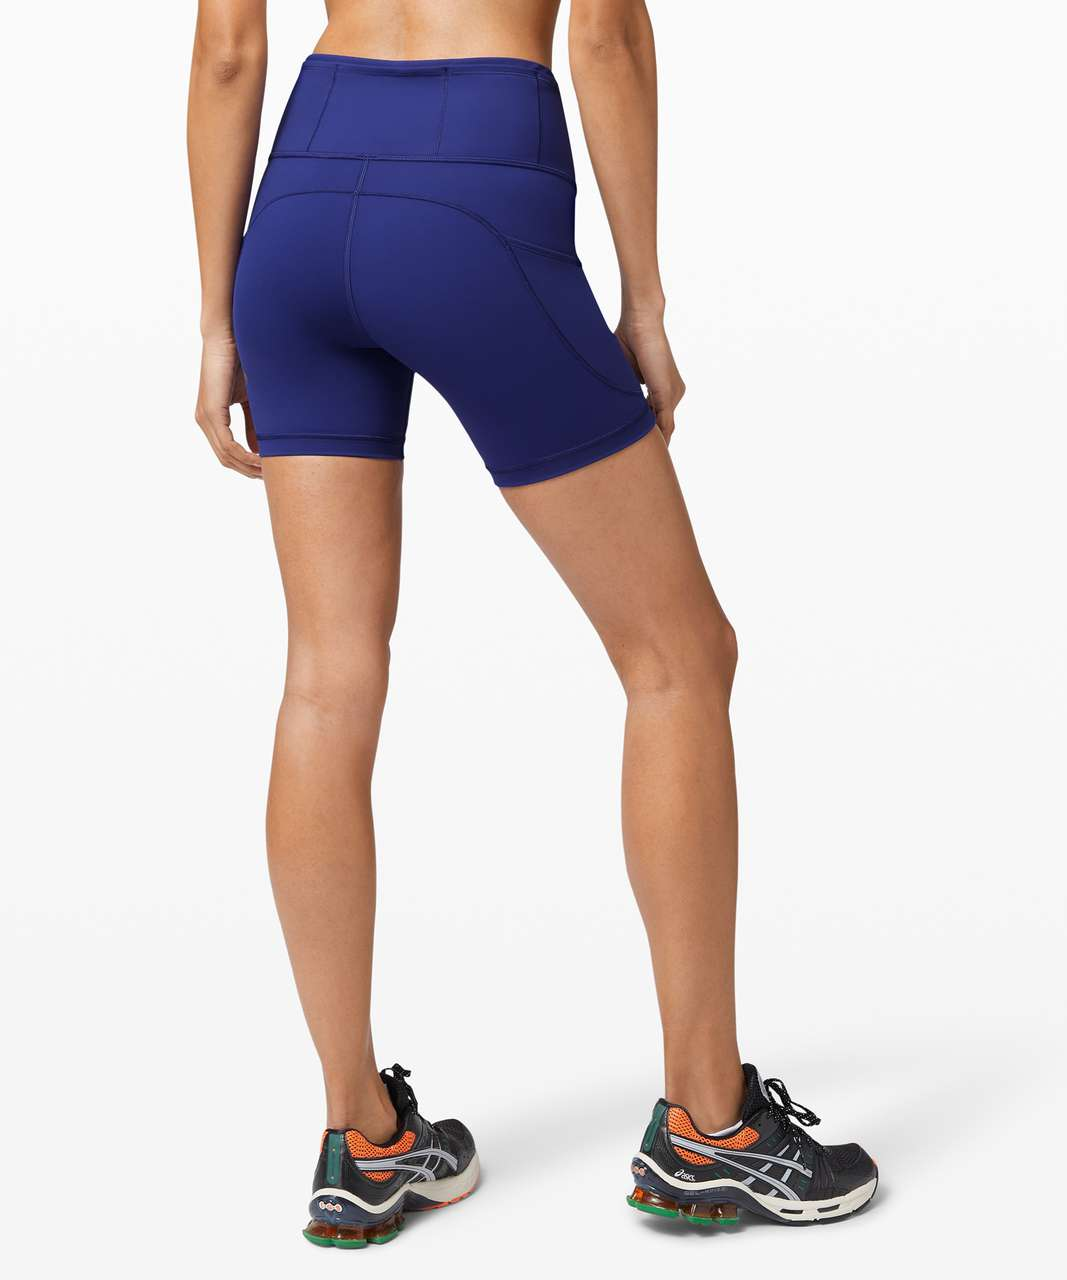 "Lululemon Fast and Free Short 6"" *Non-Reflective - Larkspur"